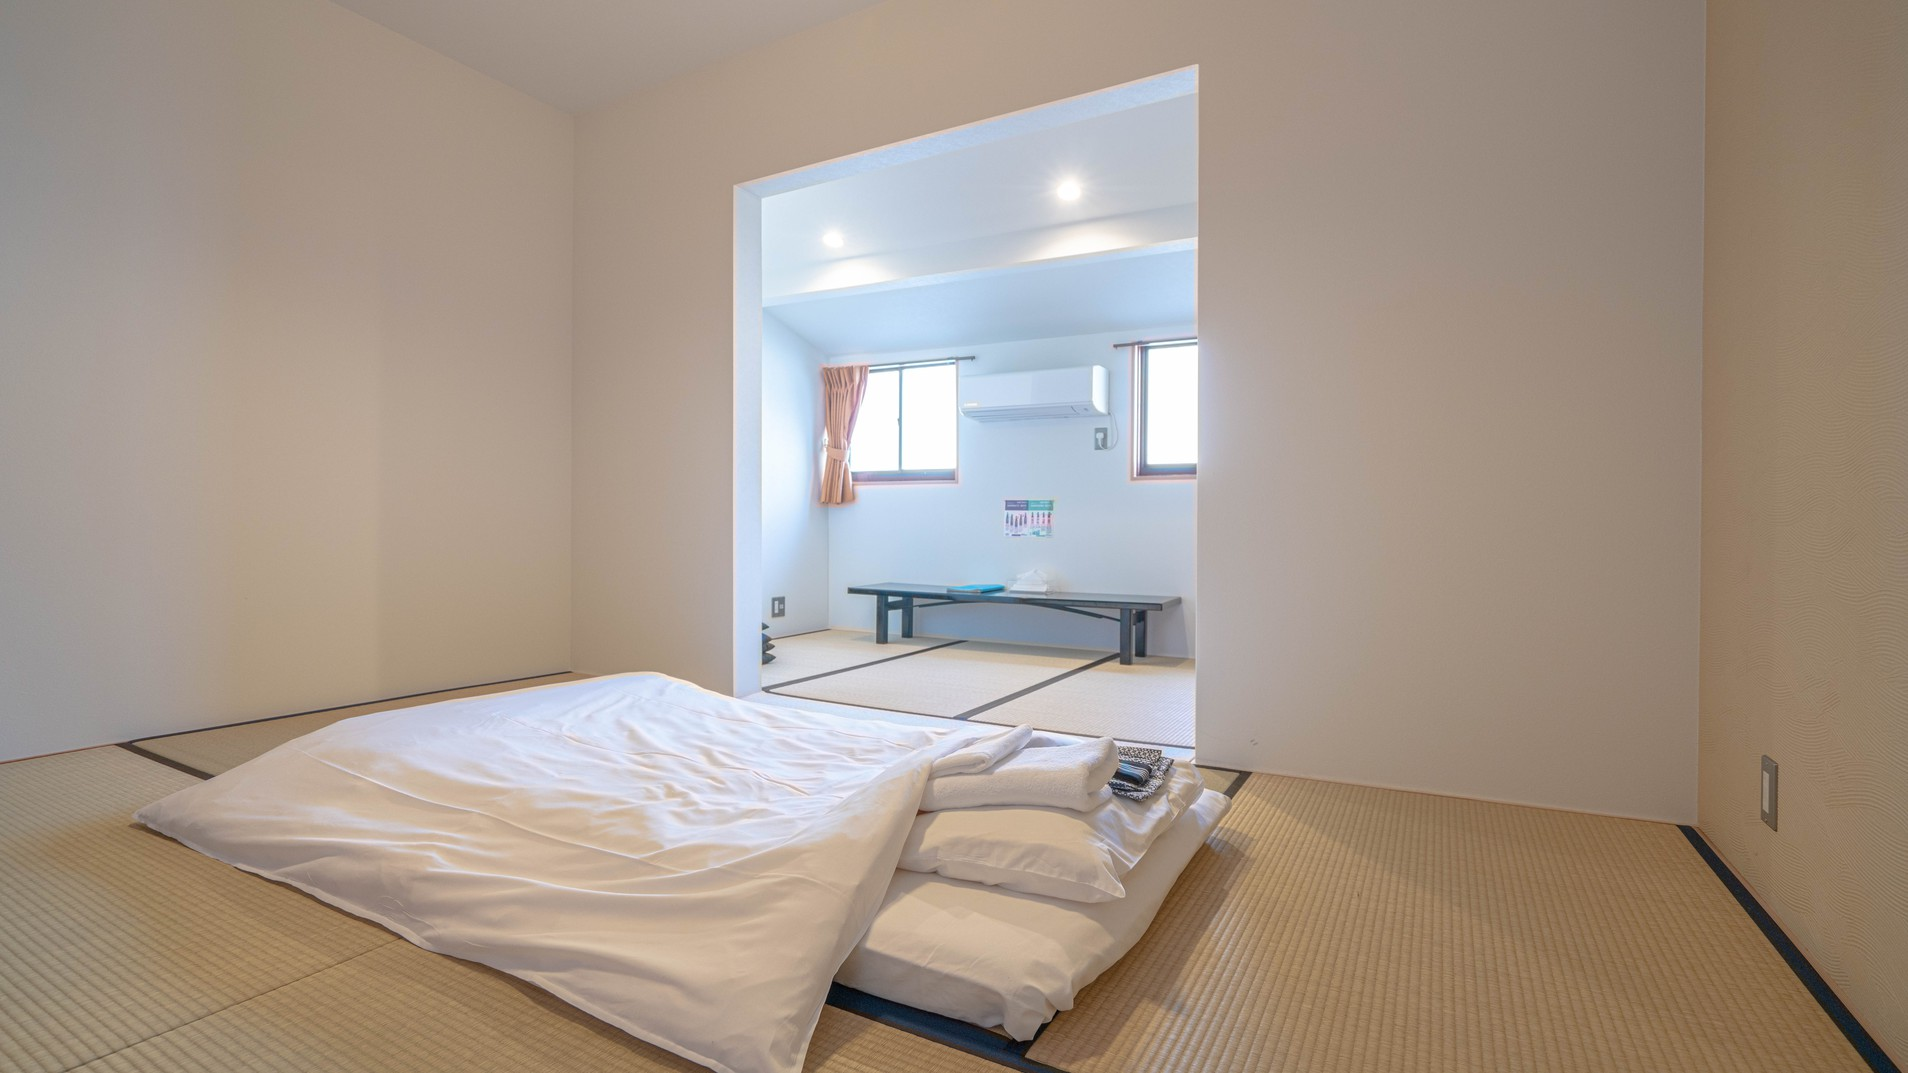 Room3 和室 定員4名 / Japanese-style room for 4 people